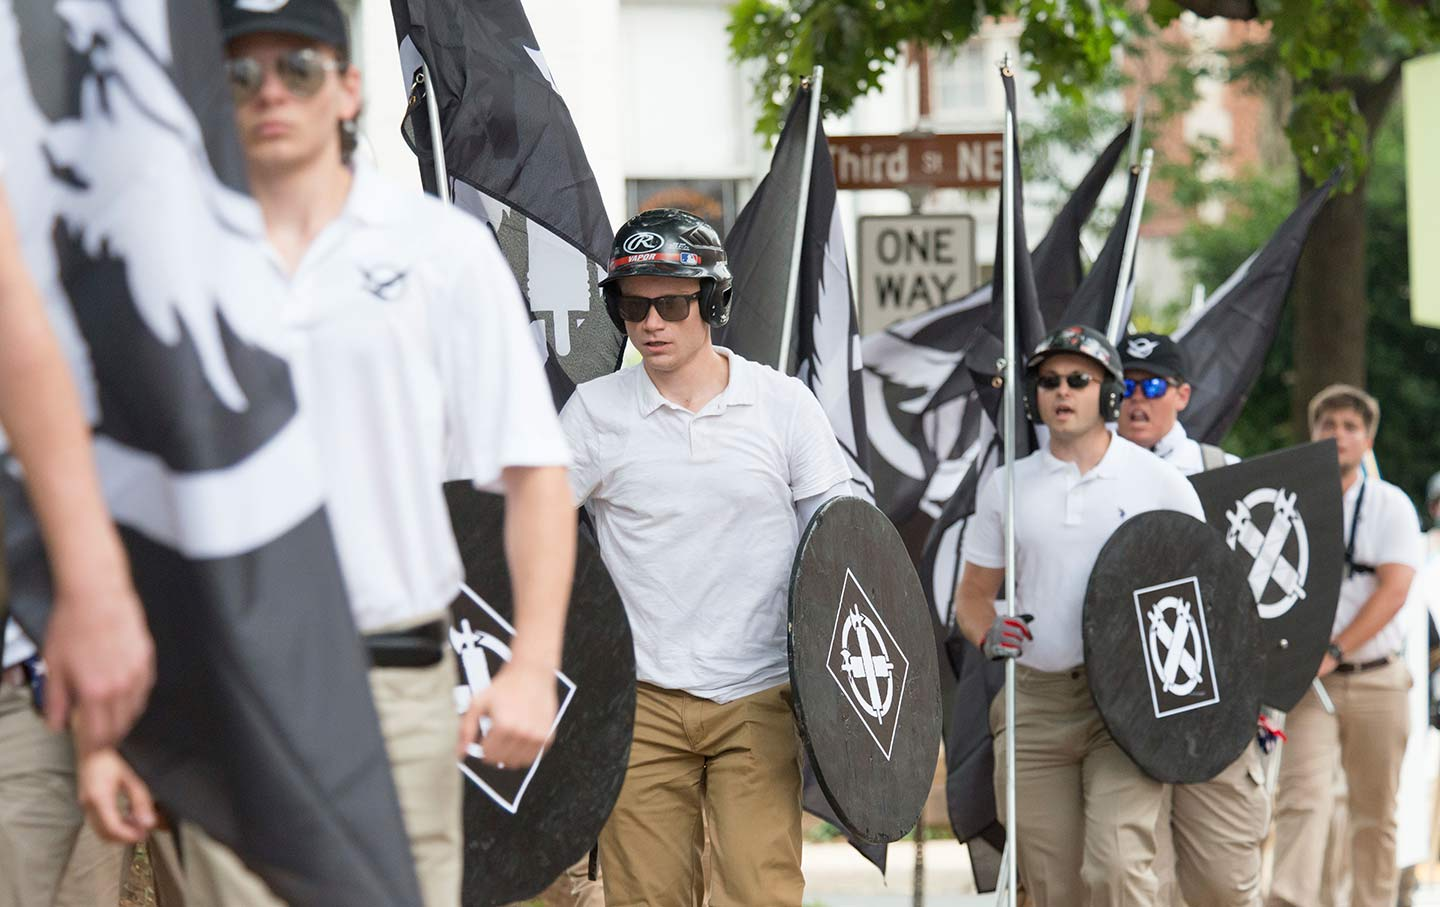 White Surpemacists Charlottesville